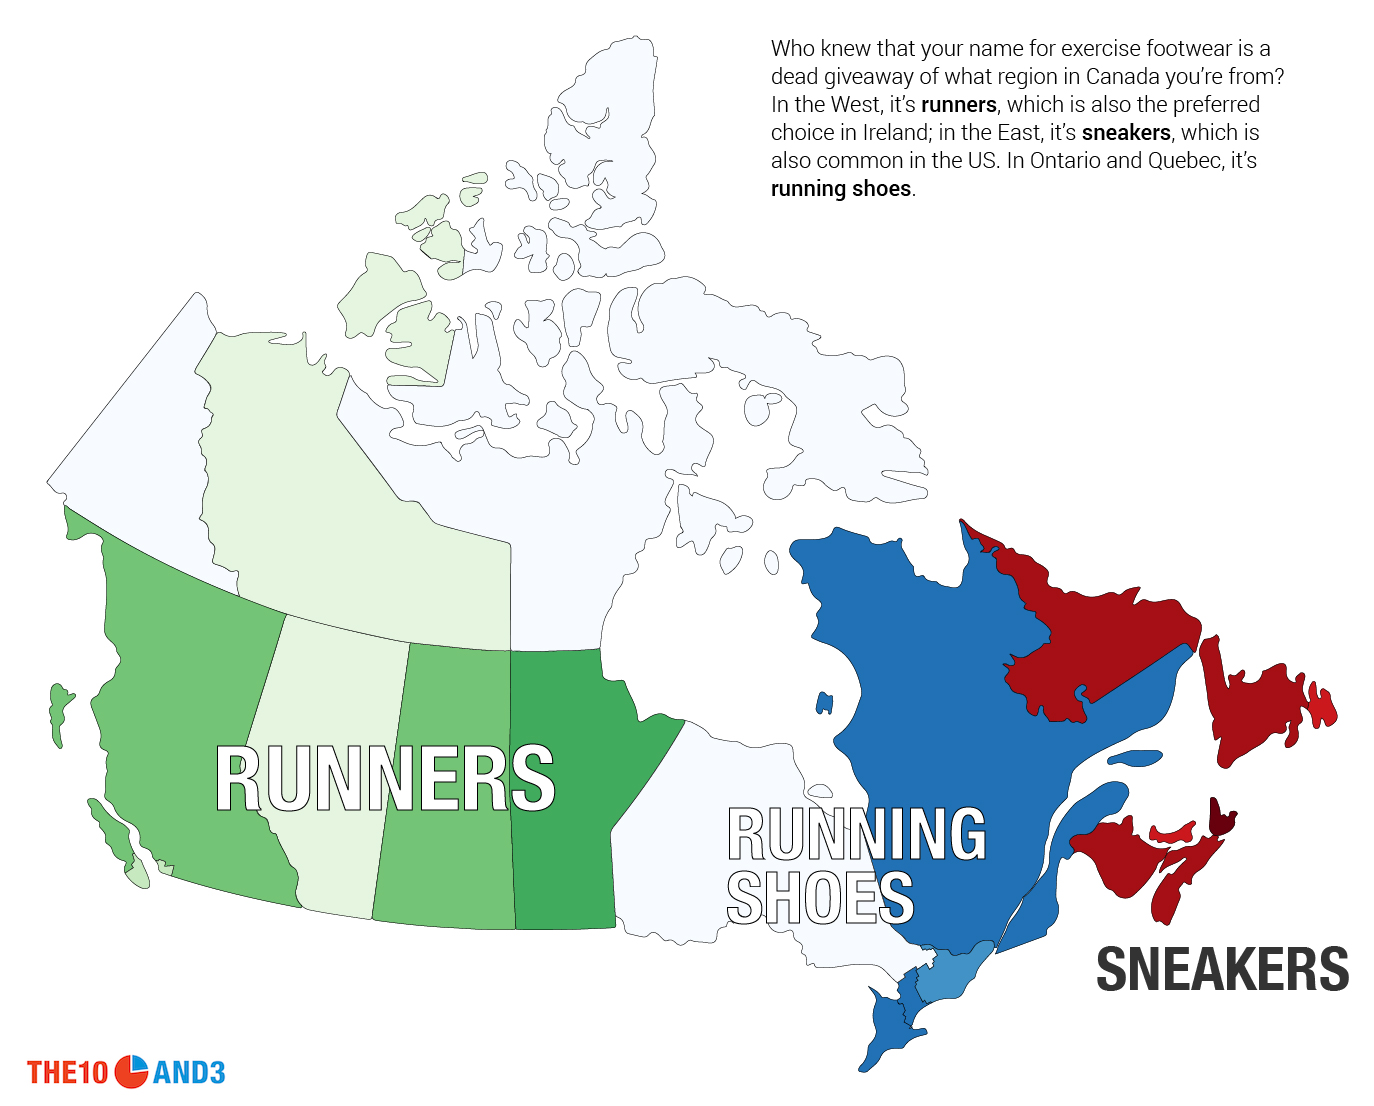 Runners vs. Running Shoes vs. Sneakers